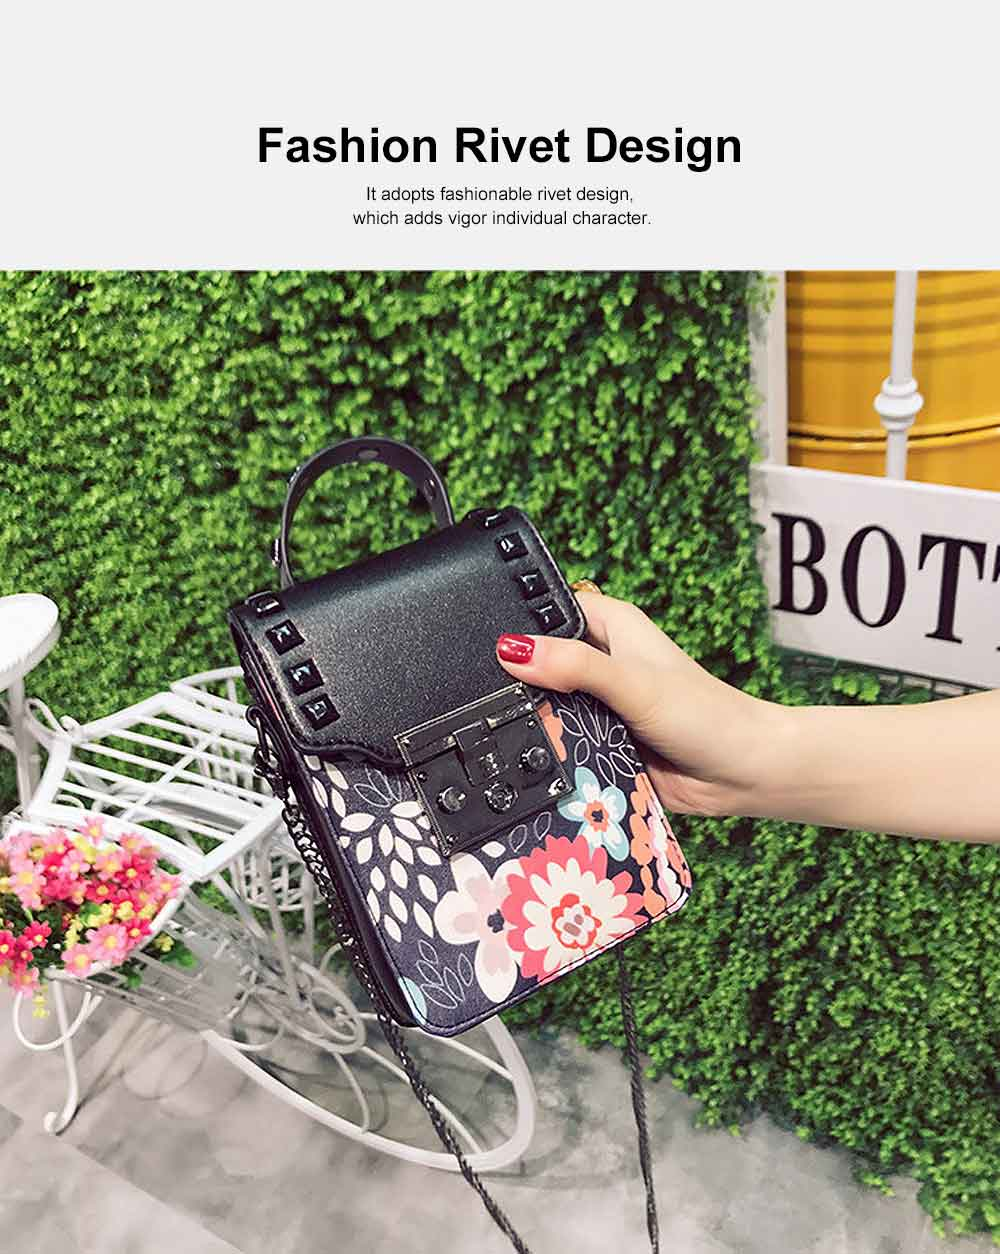 Personality Rivet Mobile Phone Shoulder Bag, All-match Mini Slanting Bag for Dating, Shopping, Daily Fahsion Mini Bag 2